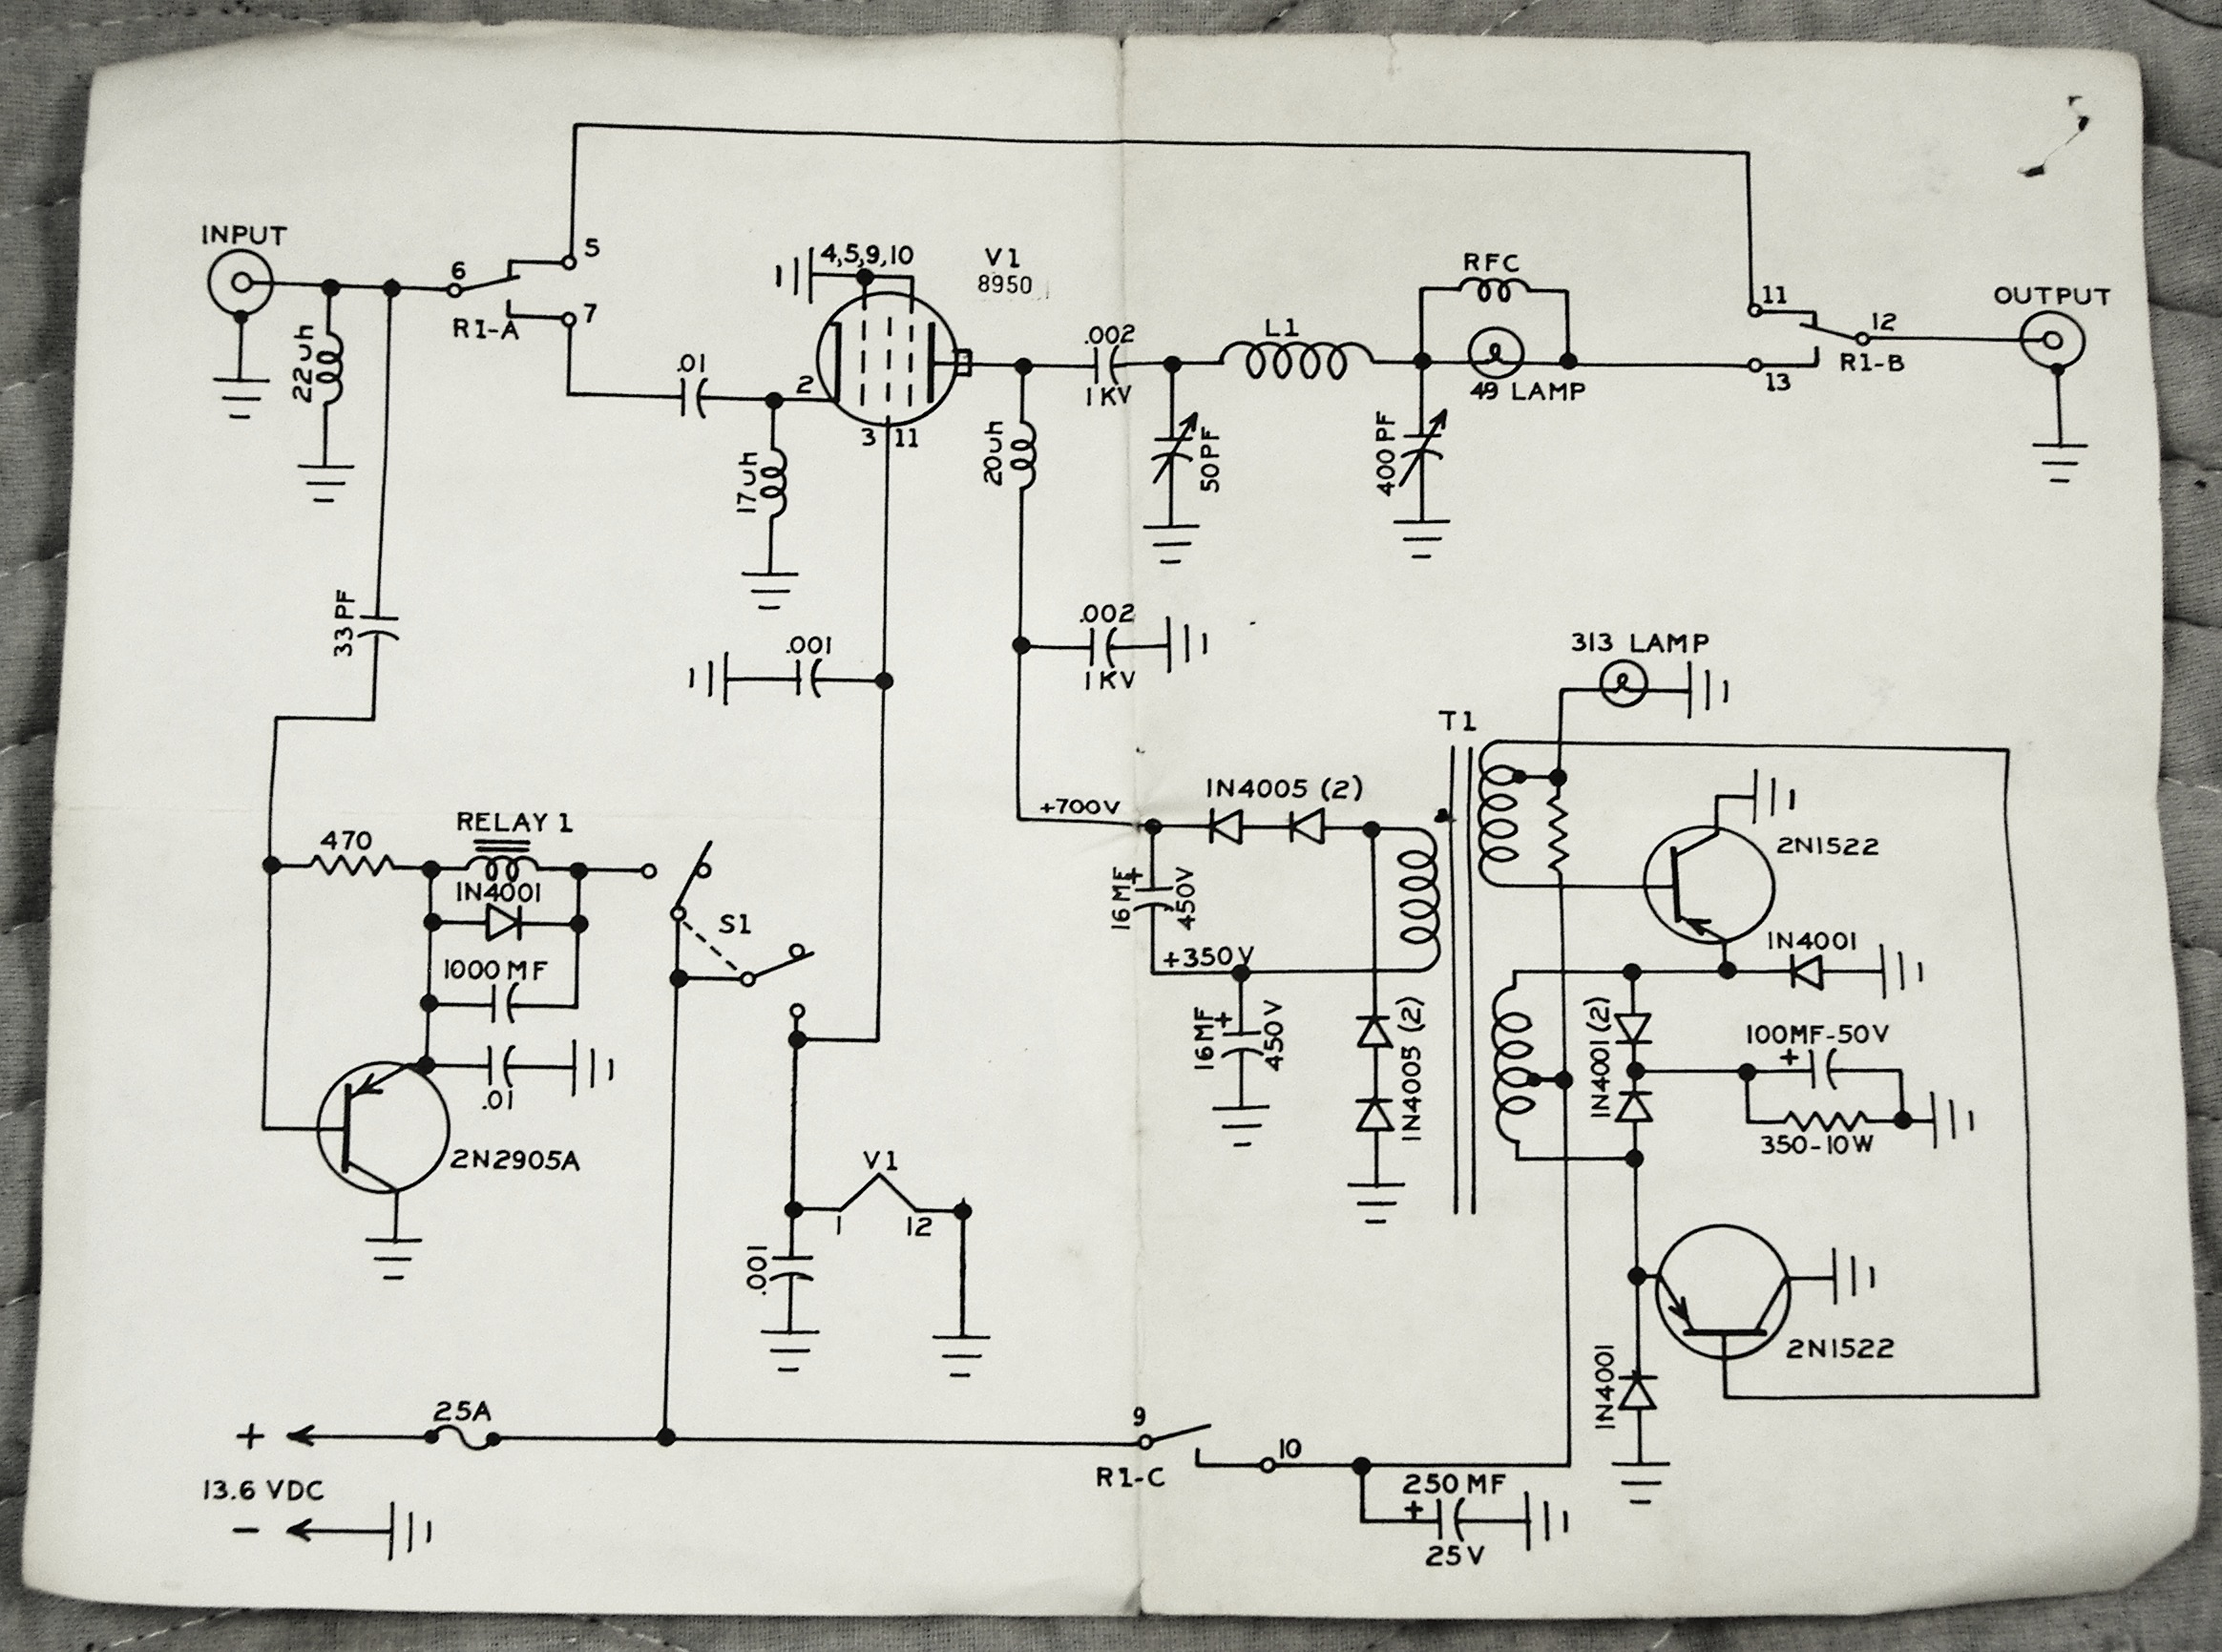 Towns3 4108483 additionally Phone Push To Talk Wiring Diagram additionally Transistor Lifier  mon Base additionally What Is The Difference Between The  mon Emitter And  mon Base Bias Configuration In BJT further Ham Radio Linear  lifier Schematics. on transistor diagram cb radio